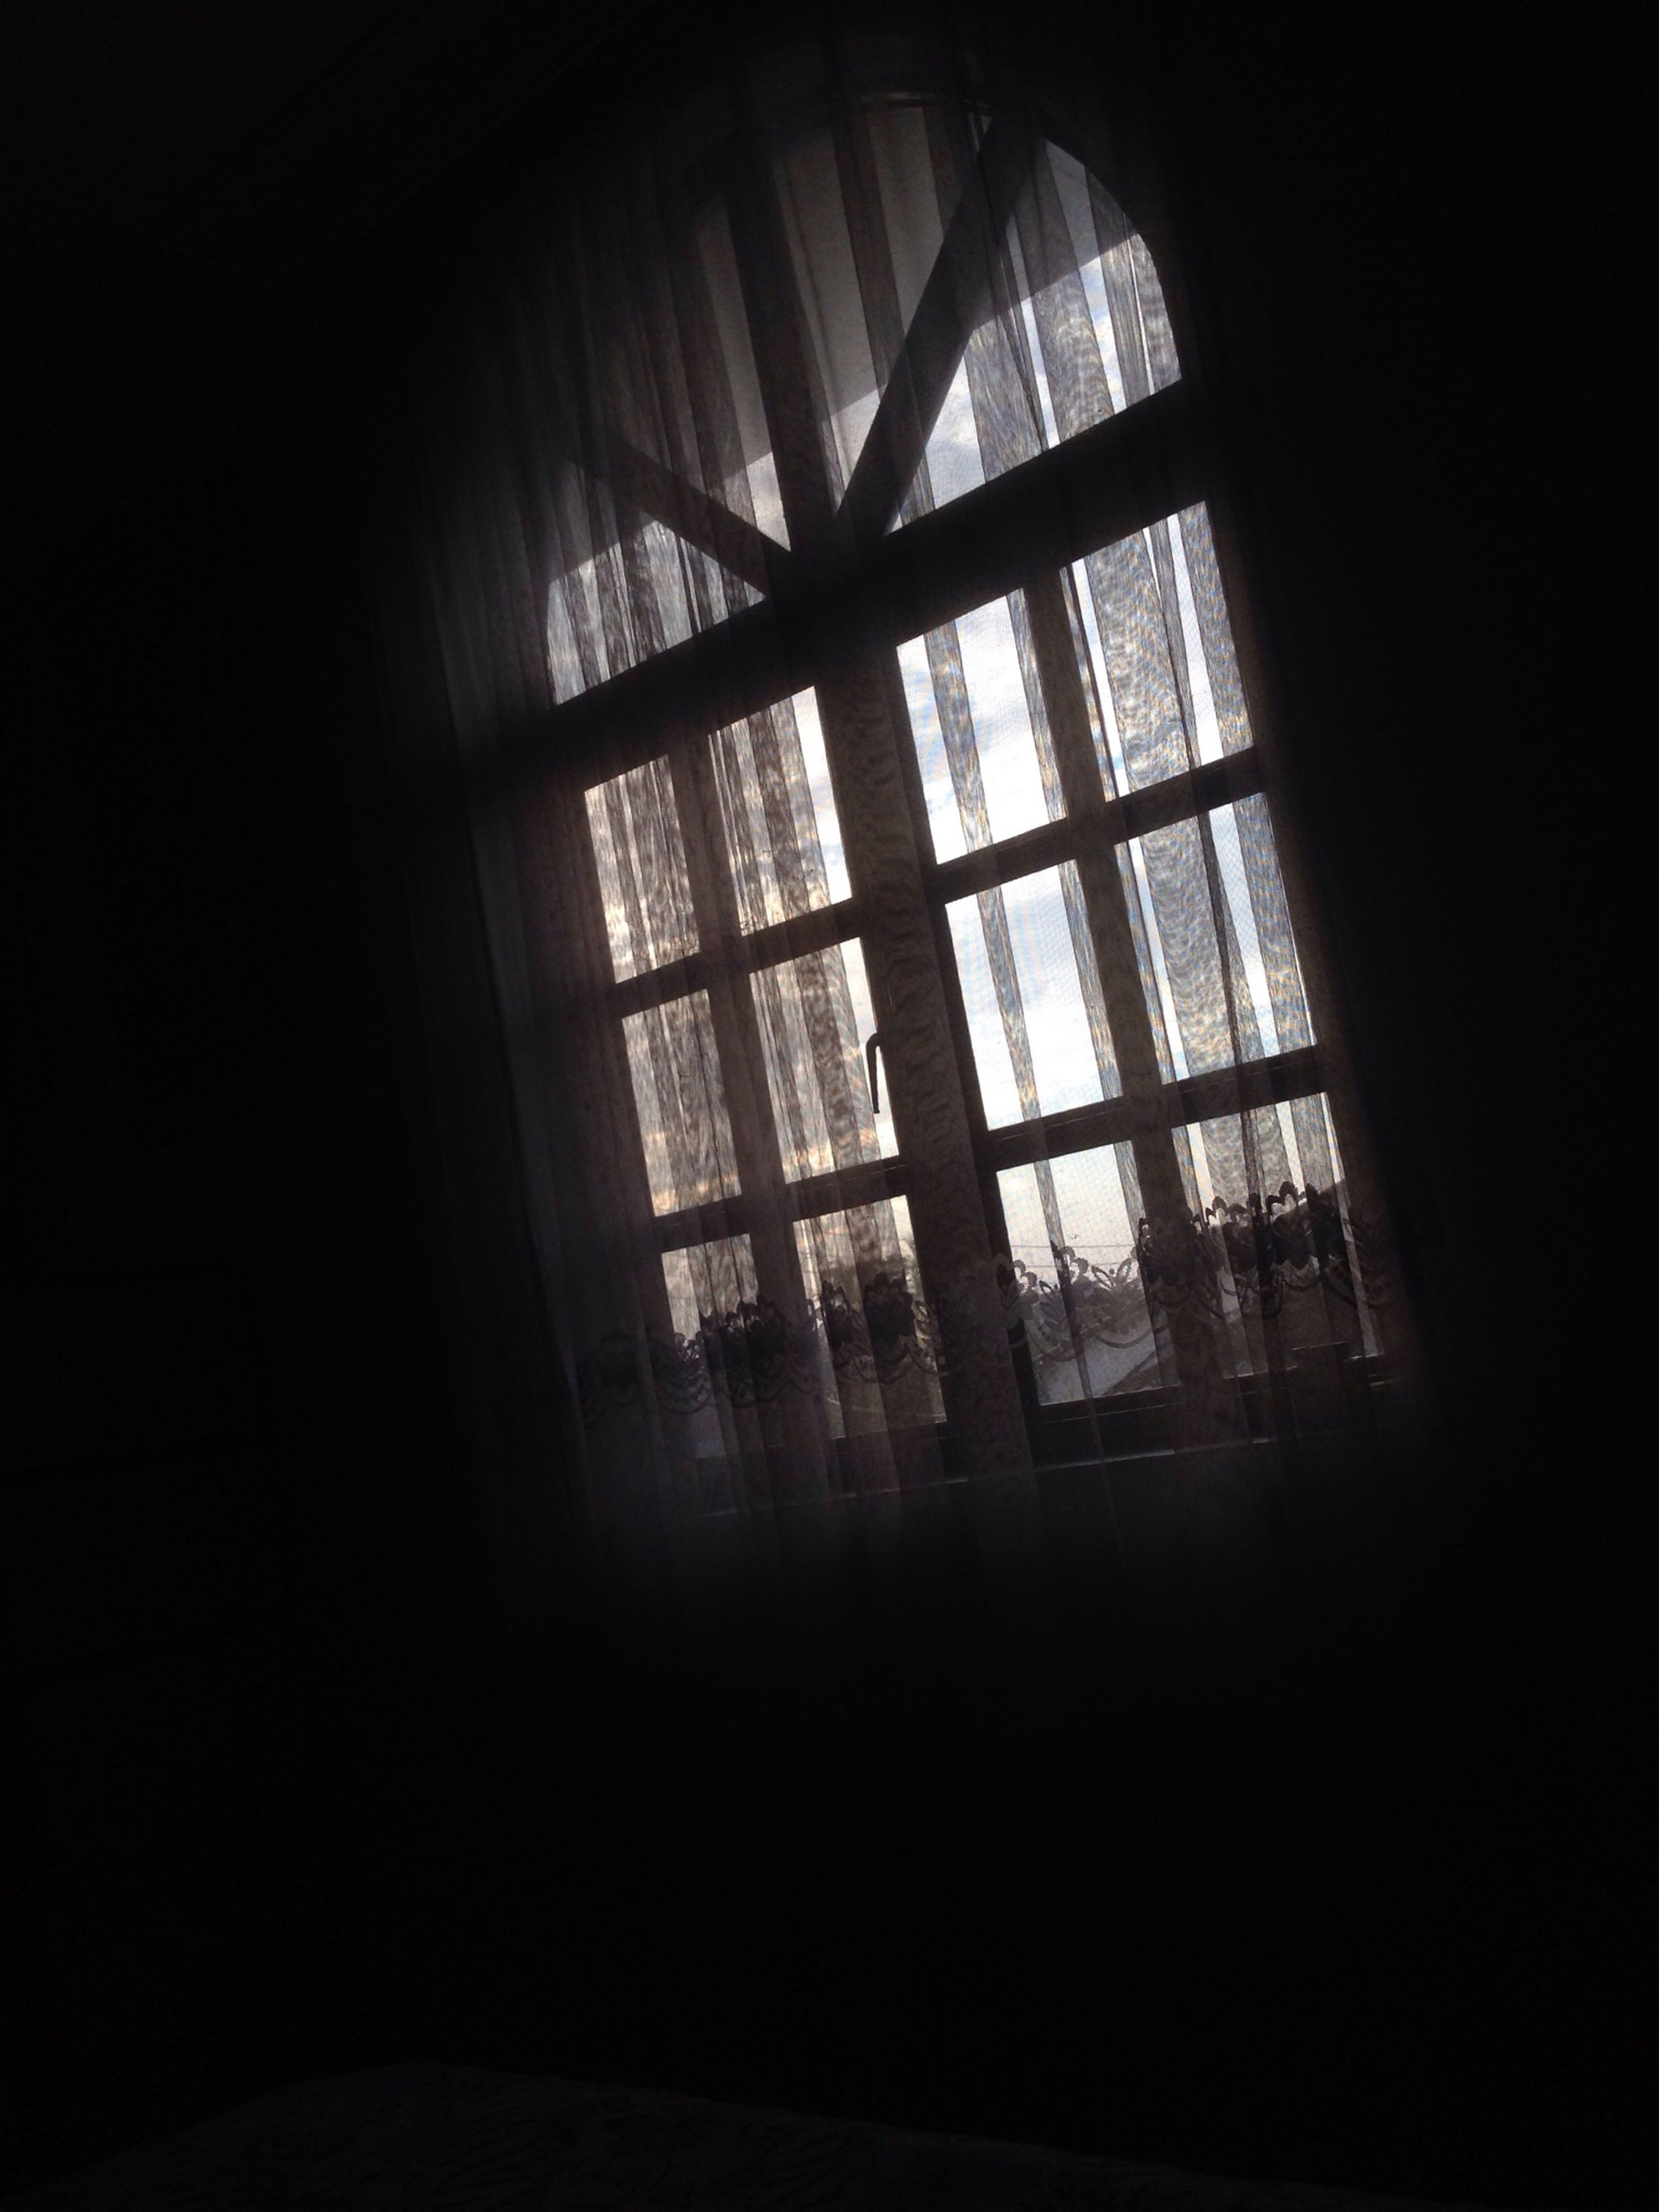 indoors, window, glass - material, transparent, home interior, dark, built structure, architecture, sunlight, house, interior, curtain, no people, day, silhouette, glass, looking through window, room, ceiling, window frame